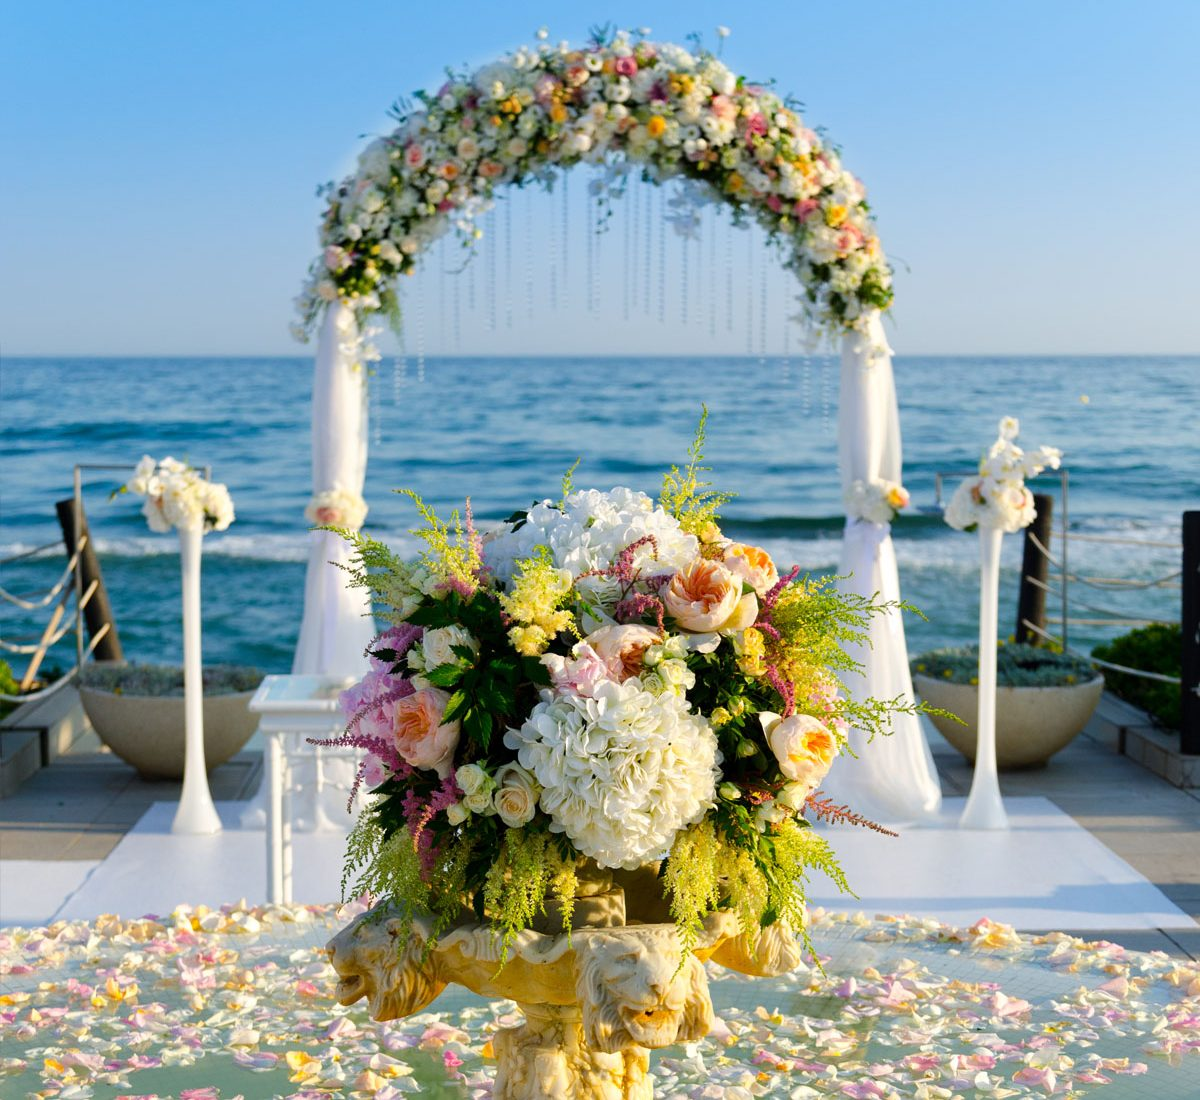 decoración floral para bodas en la playa - Floral decoration for beach weddings